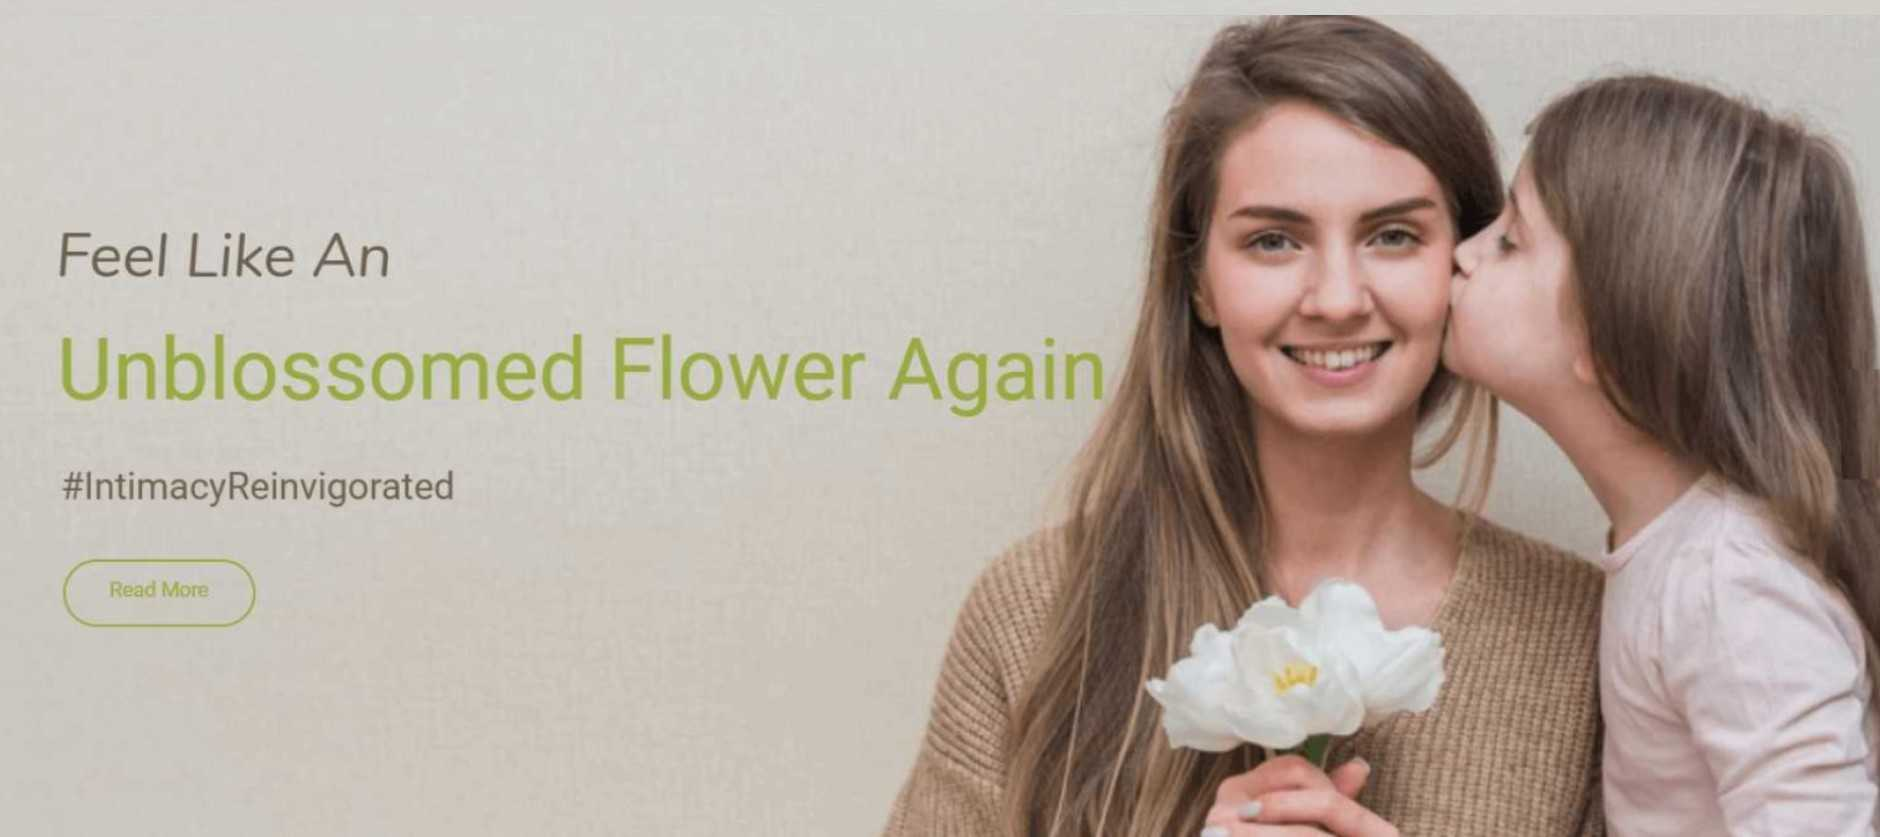 everteen helps you feel like an unblossomed flower again